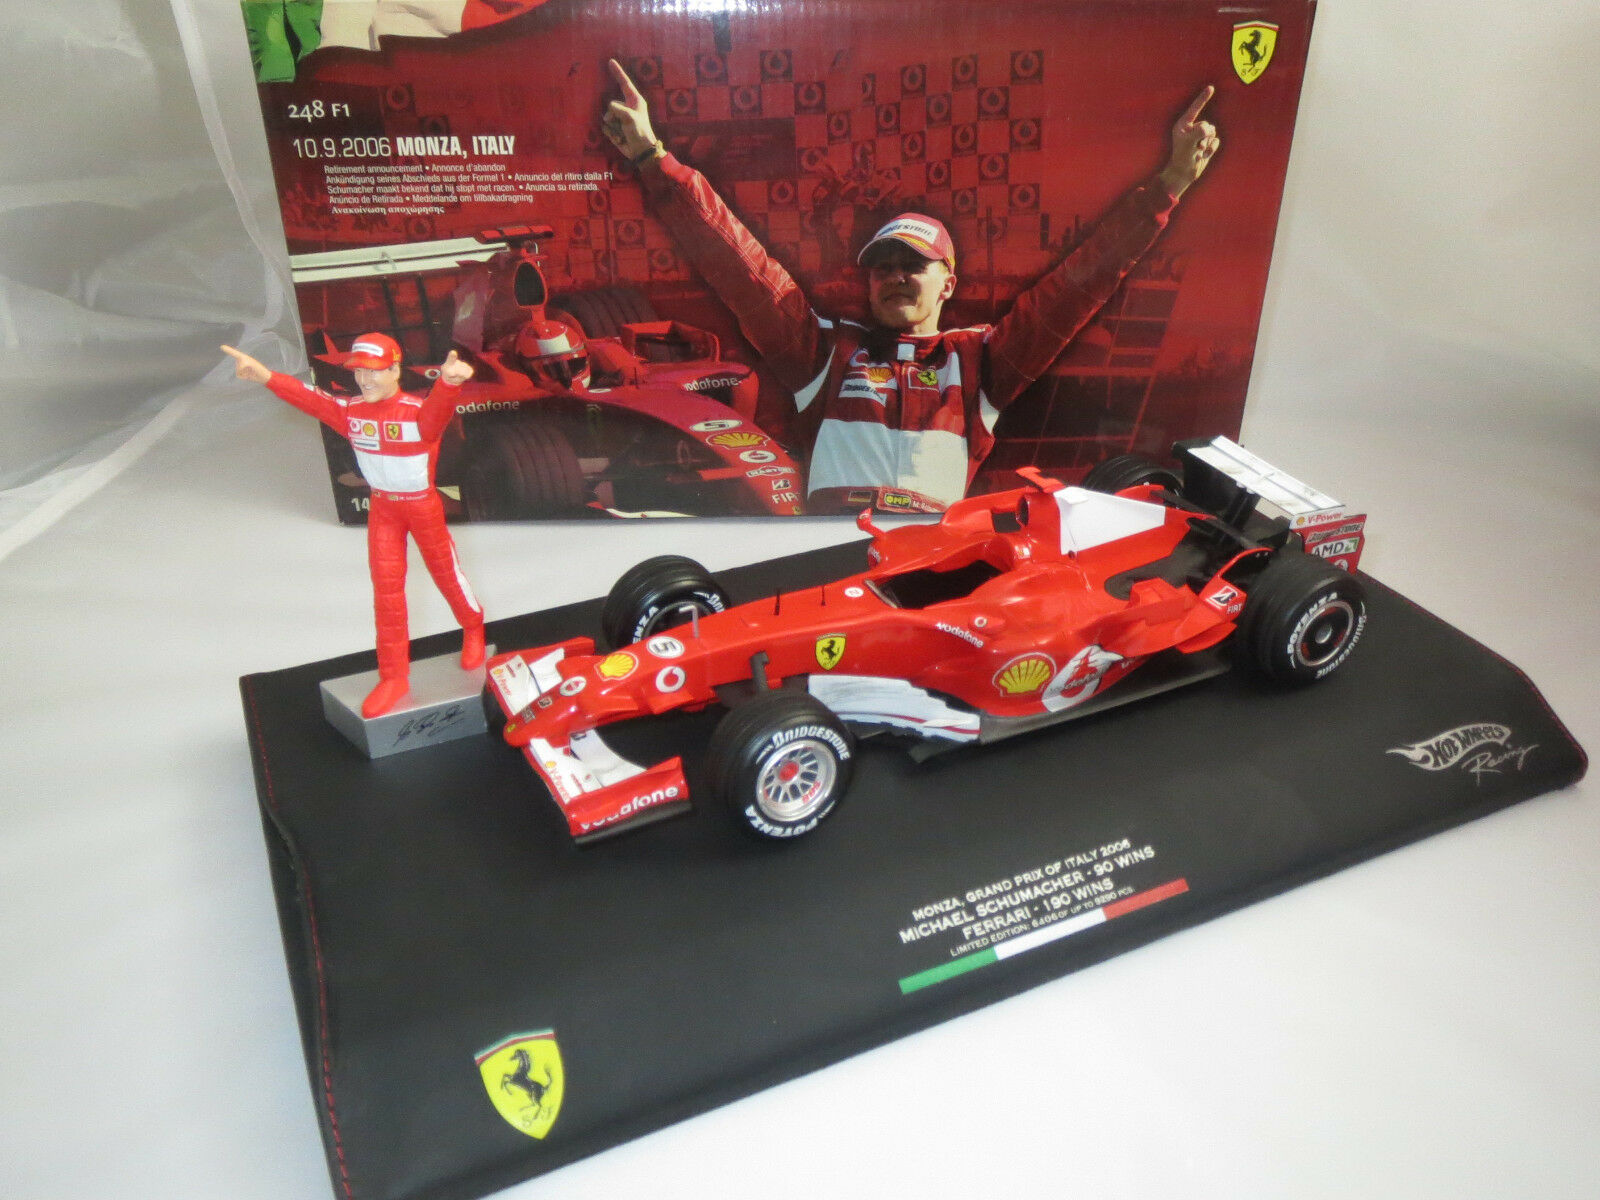 Hot wheels f1 Ferrari 248 Michael schumacher  10.09.2006 Monz,  en 1 18, rar